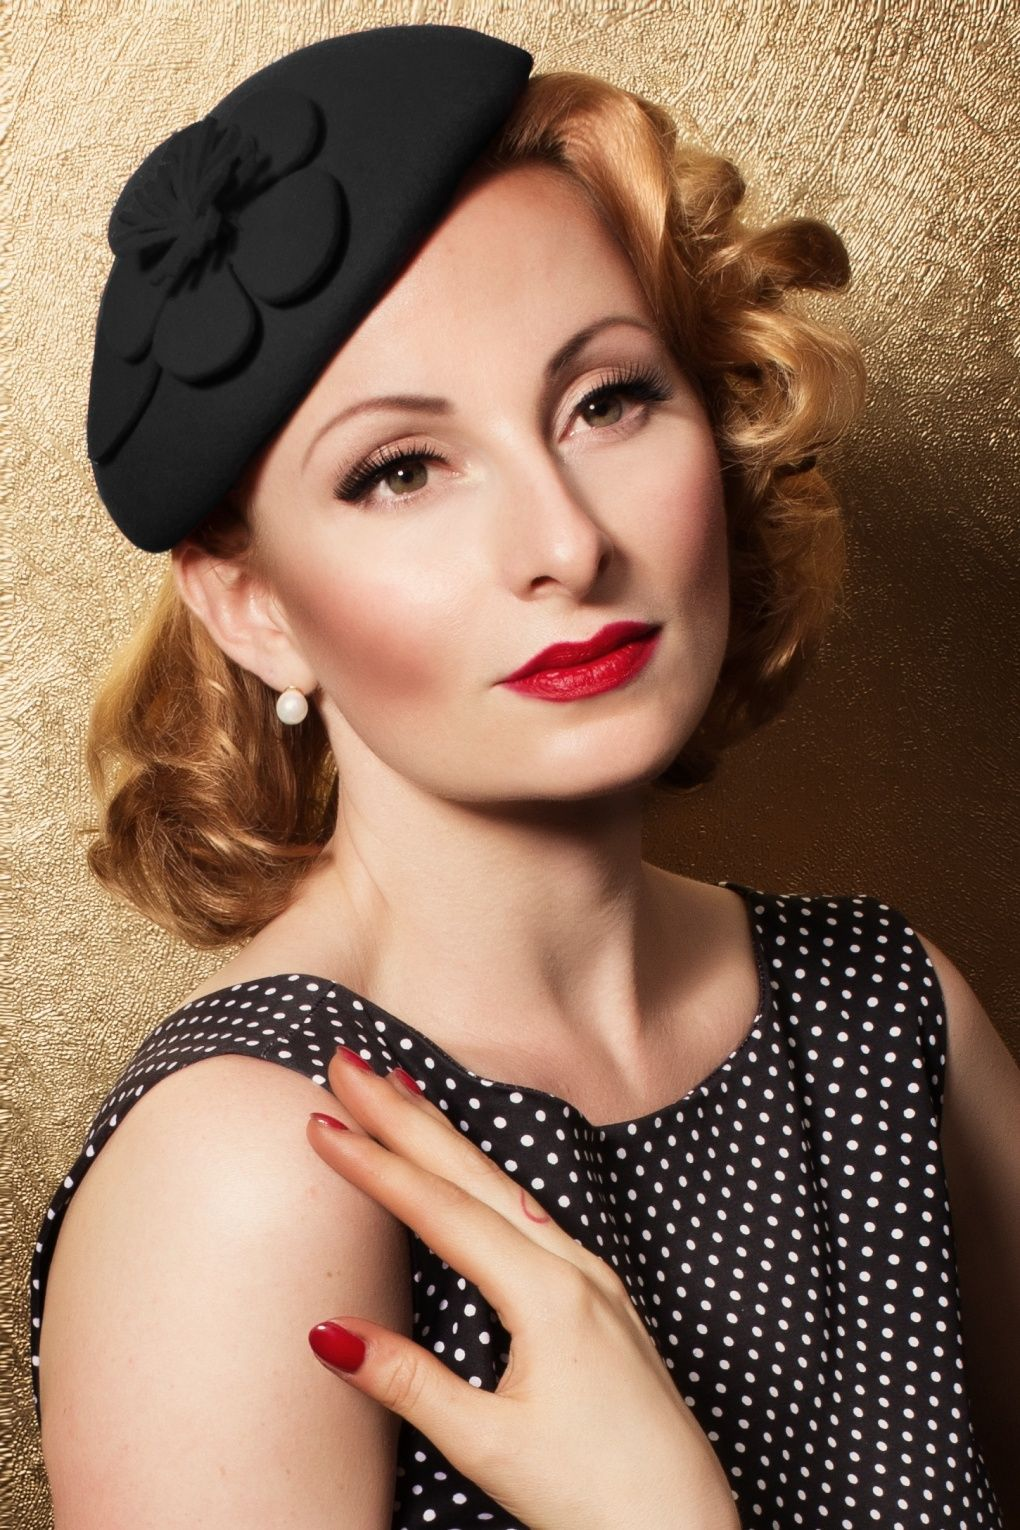 40s style fascinator | CLASSIC WOMEN\'S FASHION | Pinterest ...